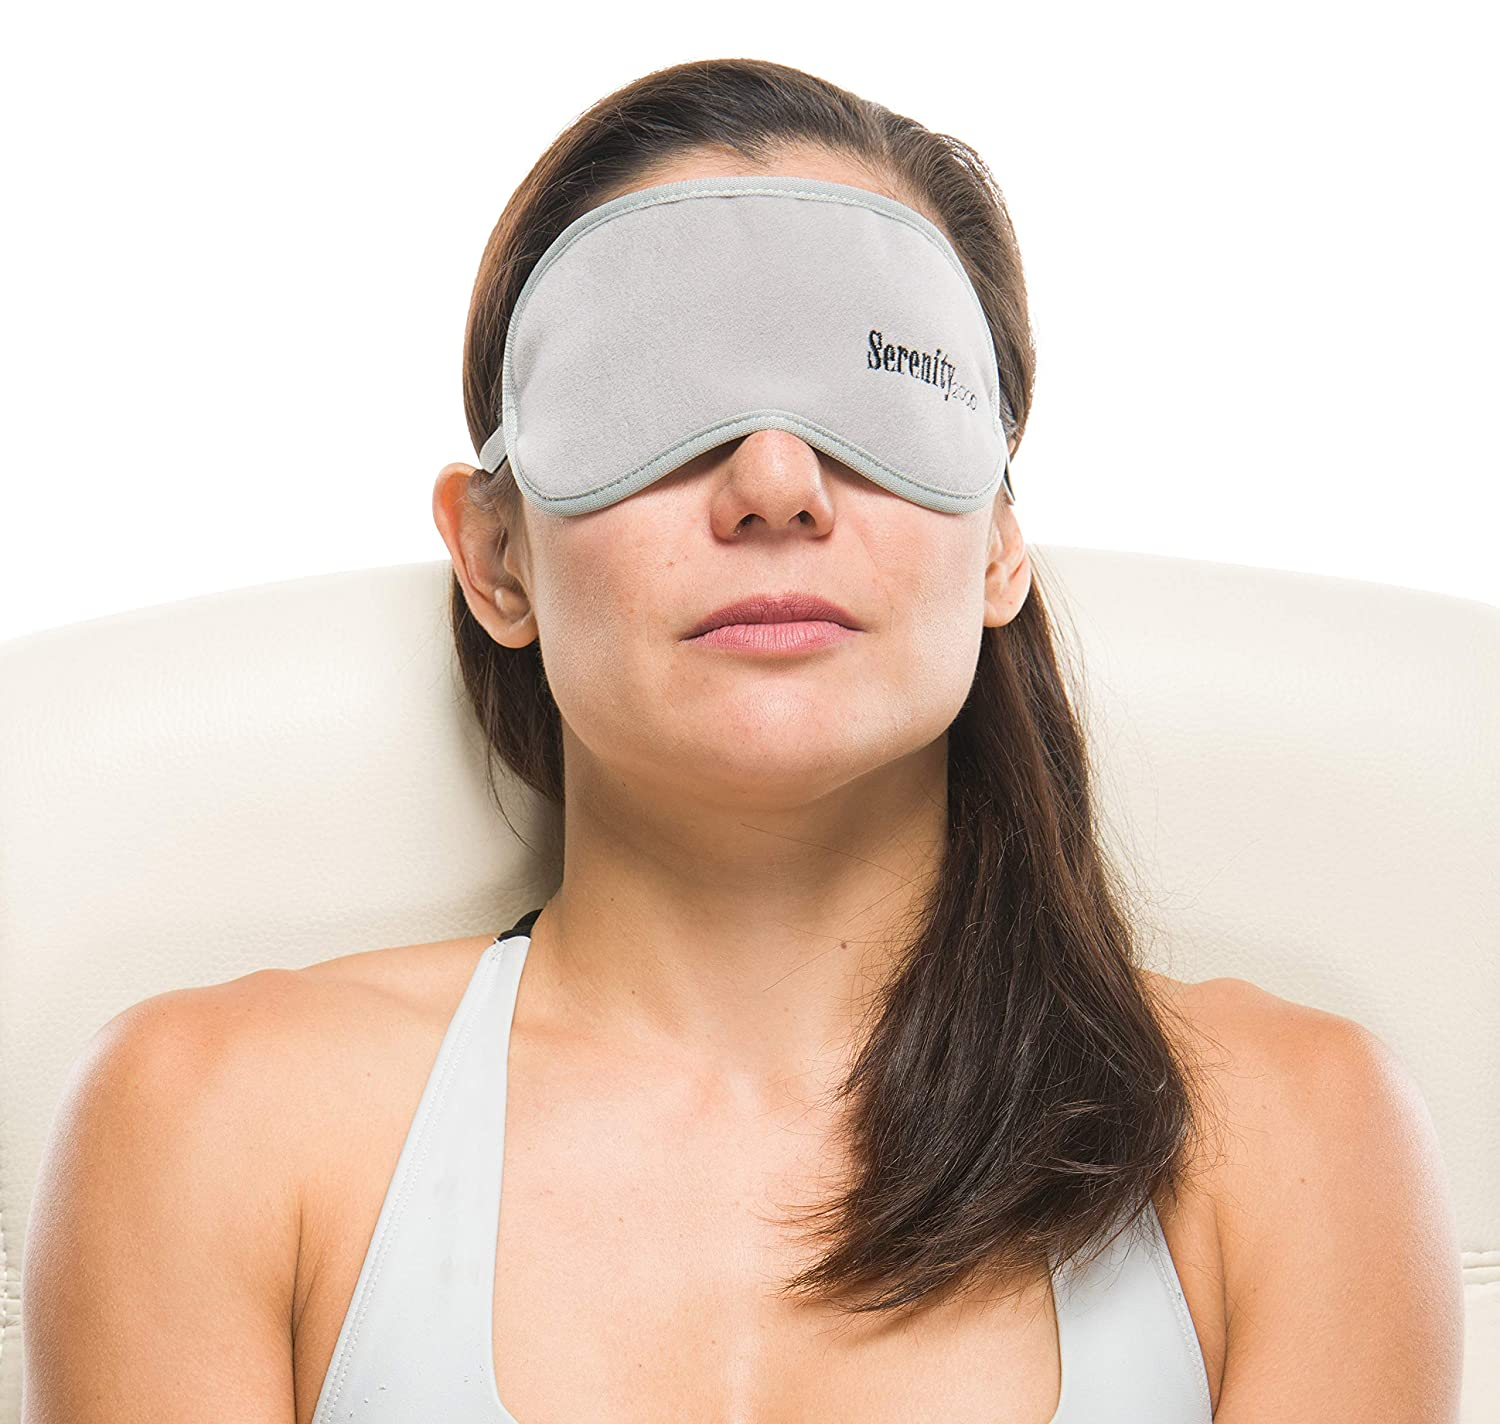 Magnetic Eye Mask for Improved Sleep & Wellness